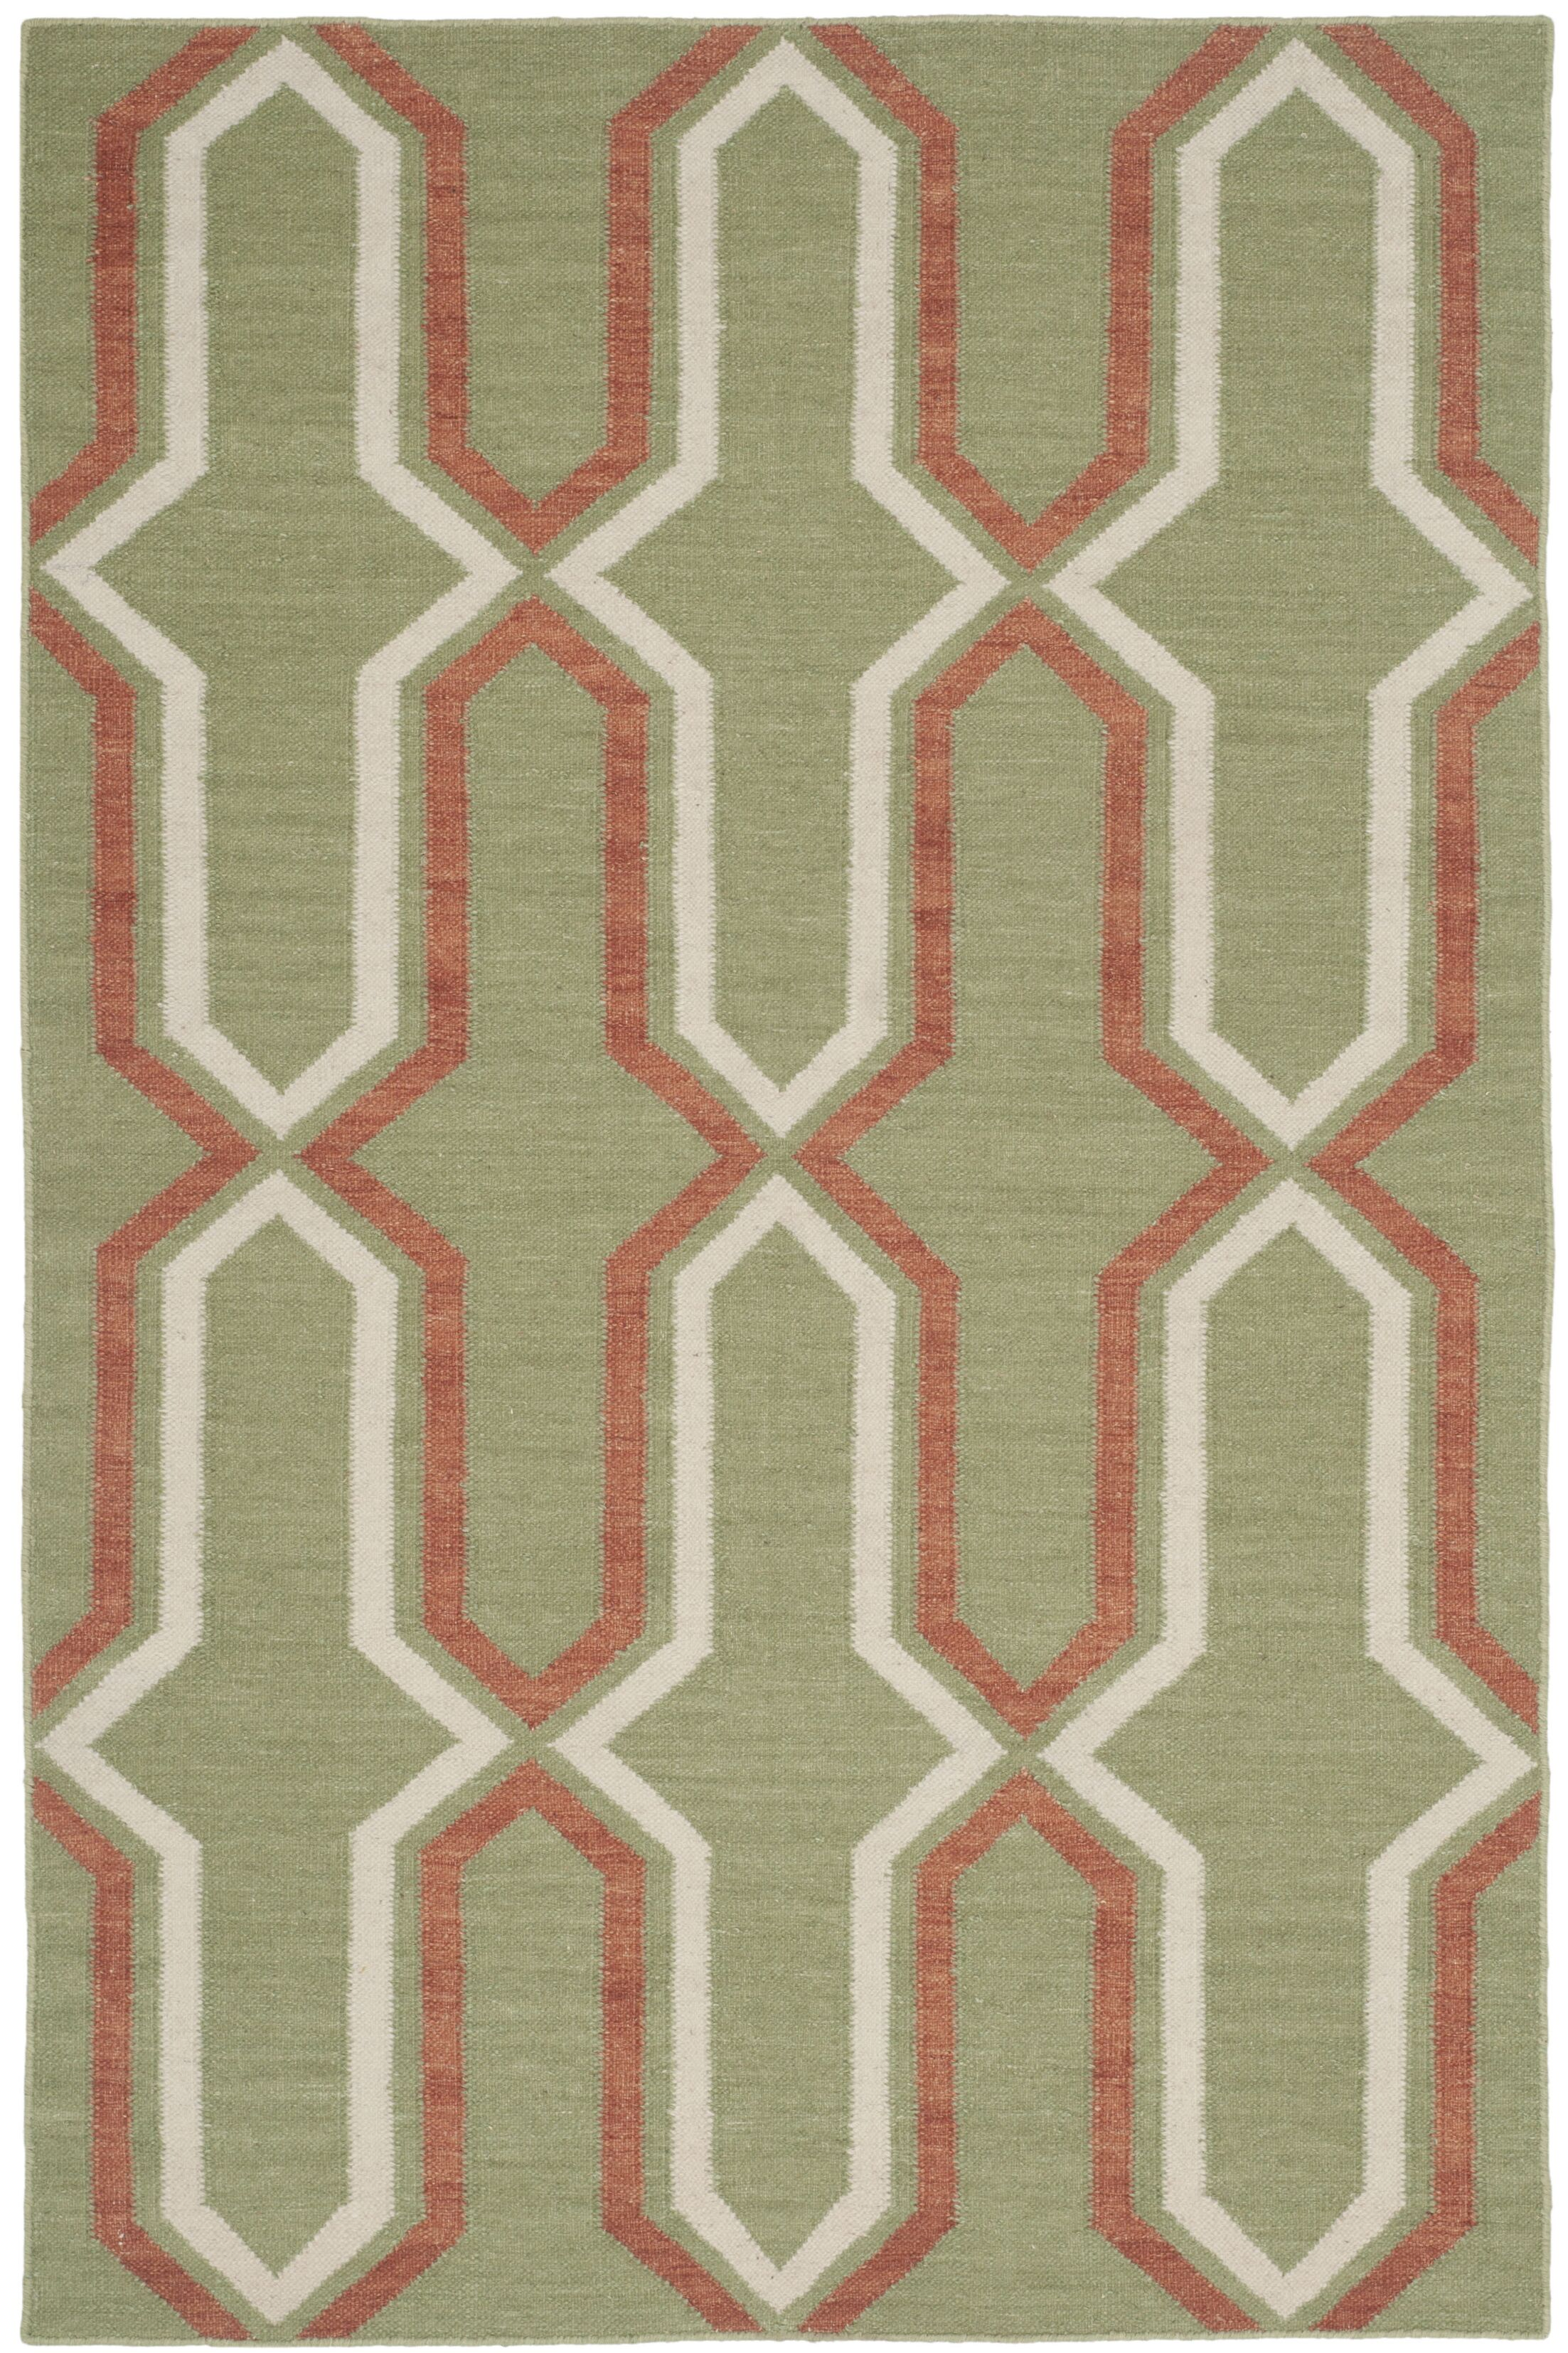 Dhurries Hand-Woven Green/Orange Contemporary Area Rug Rug Size: Rectangle 6' x 9'